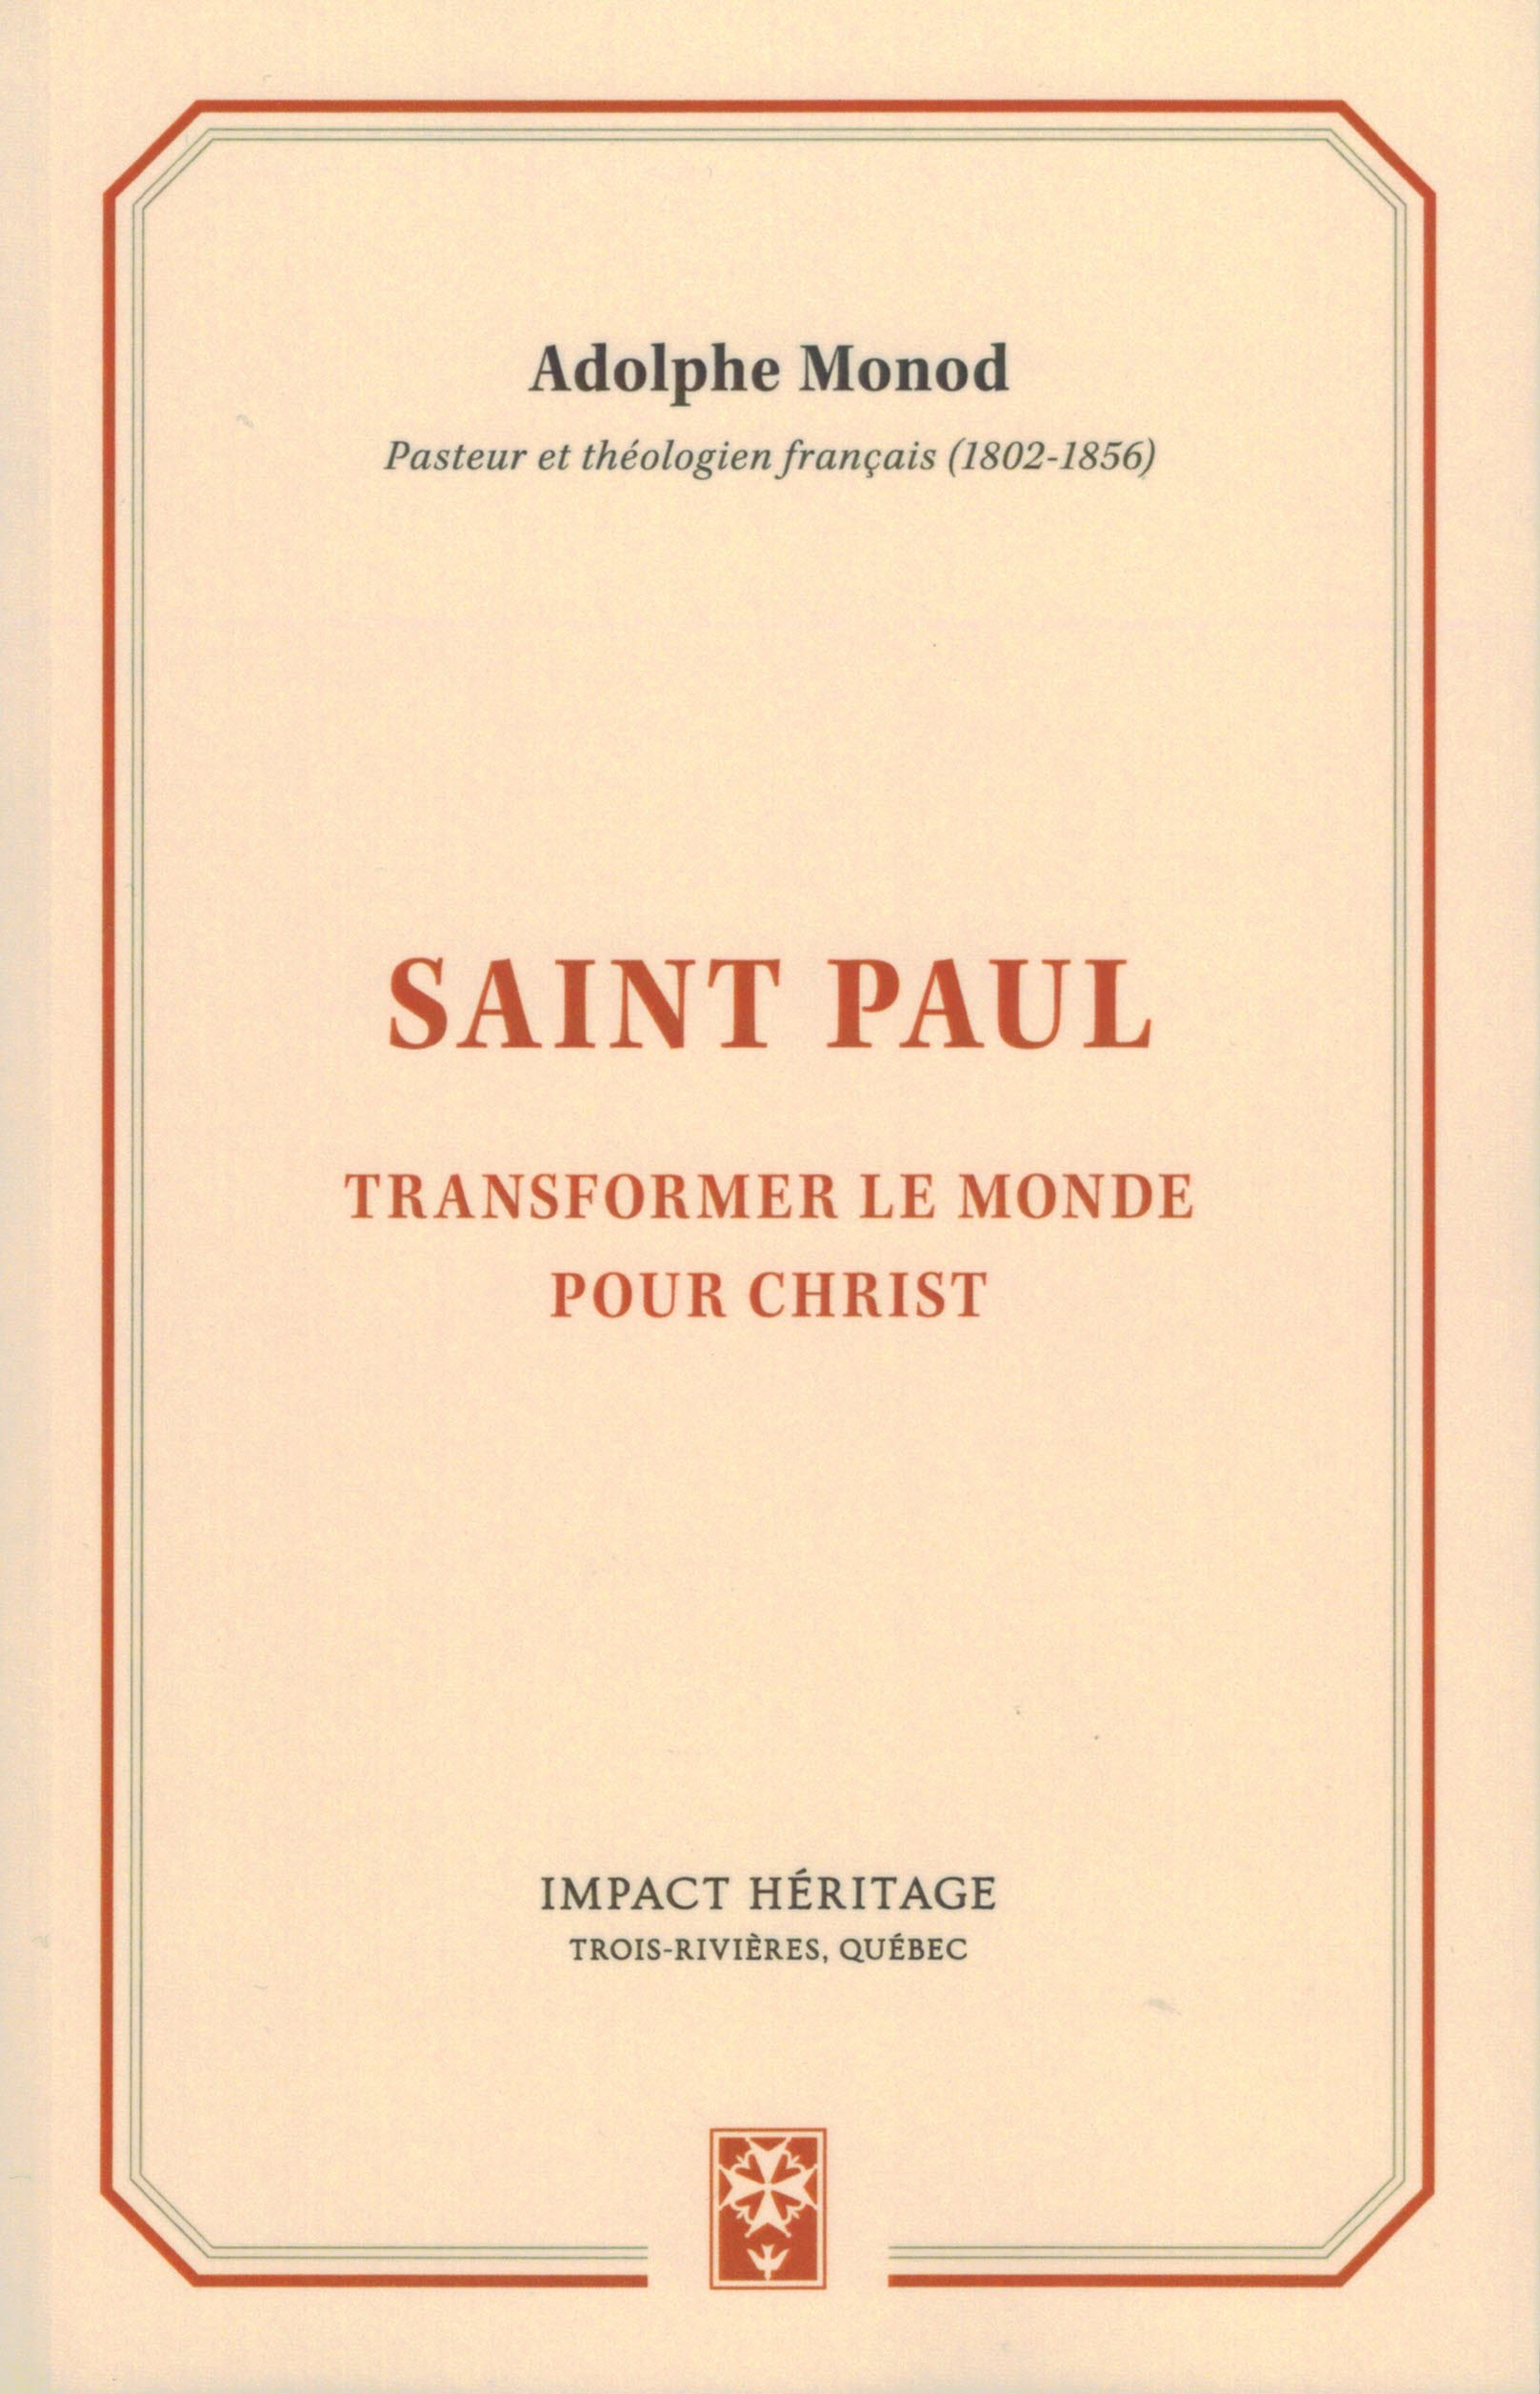 Saint Paul - Transformer le monde pour Christ